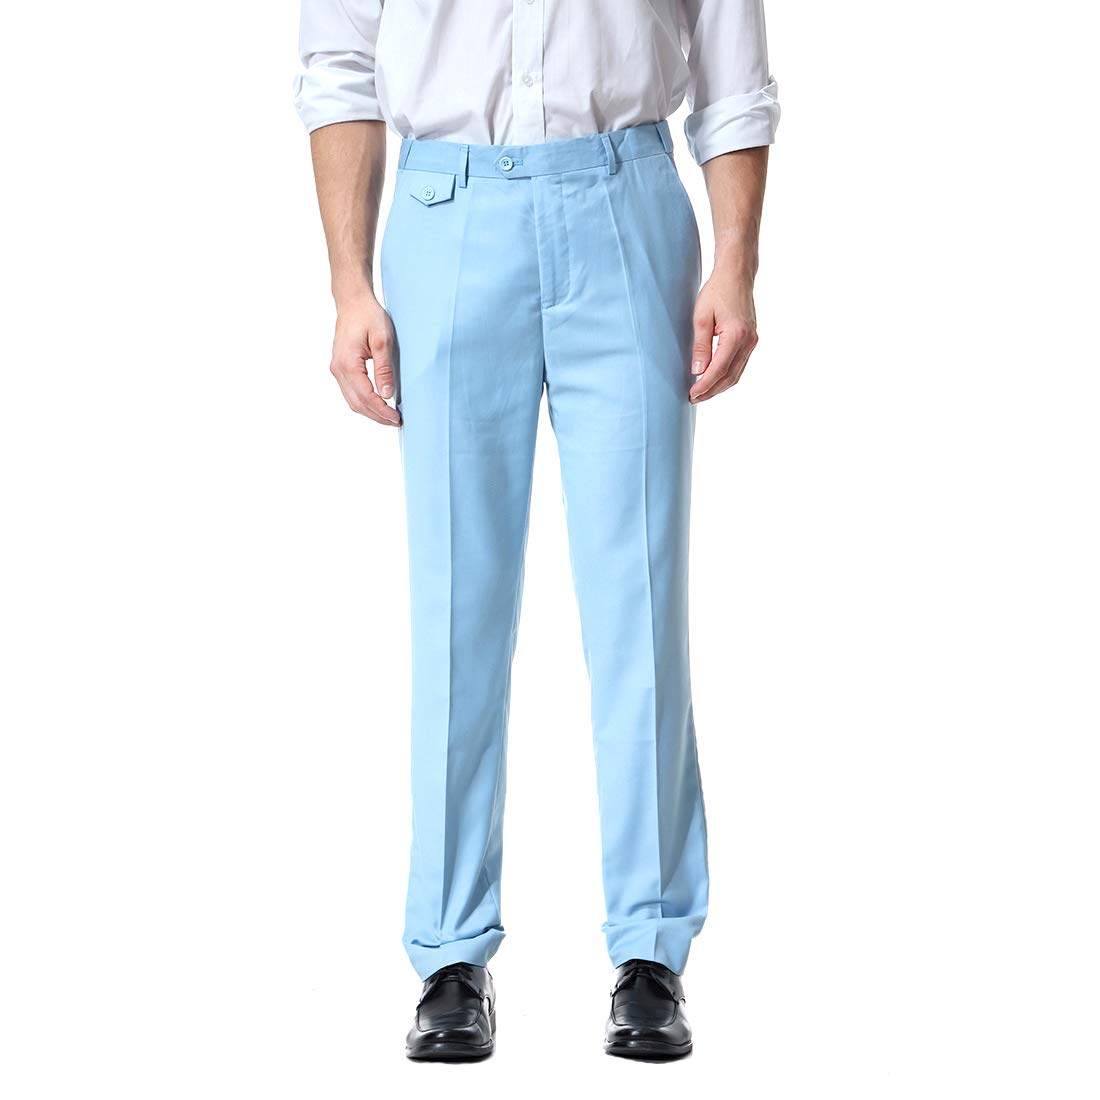 Tootless-Men Career Big and Tall Pull On Style Easy Care Pencil Pants